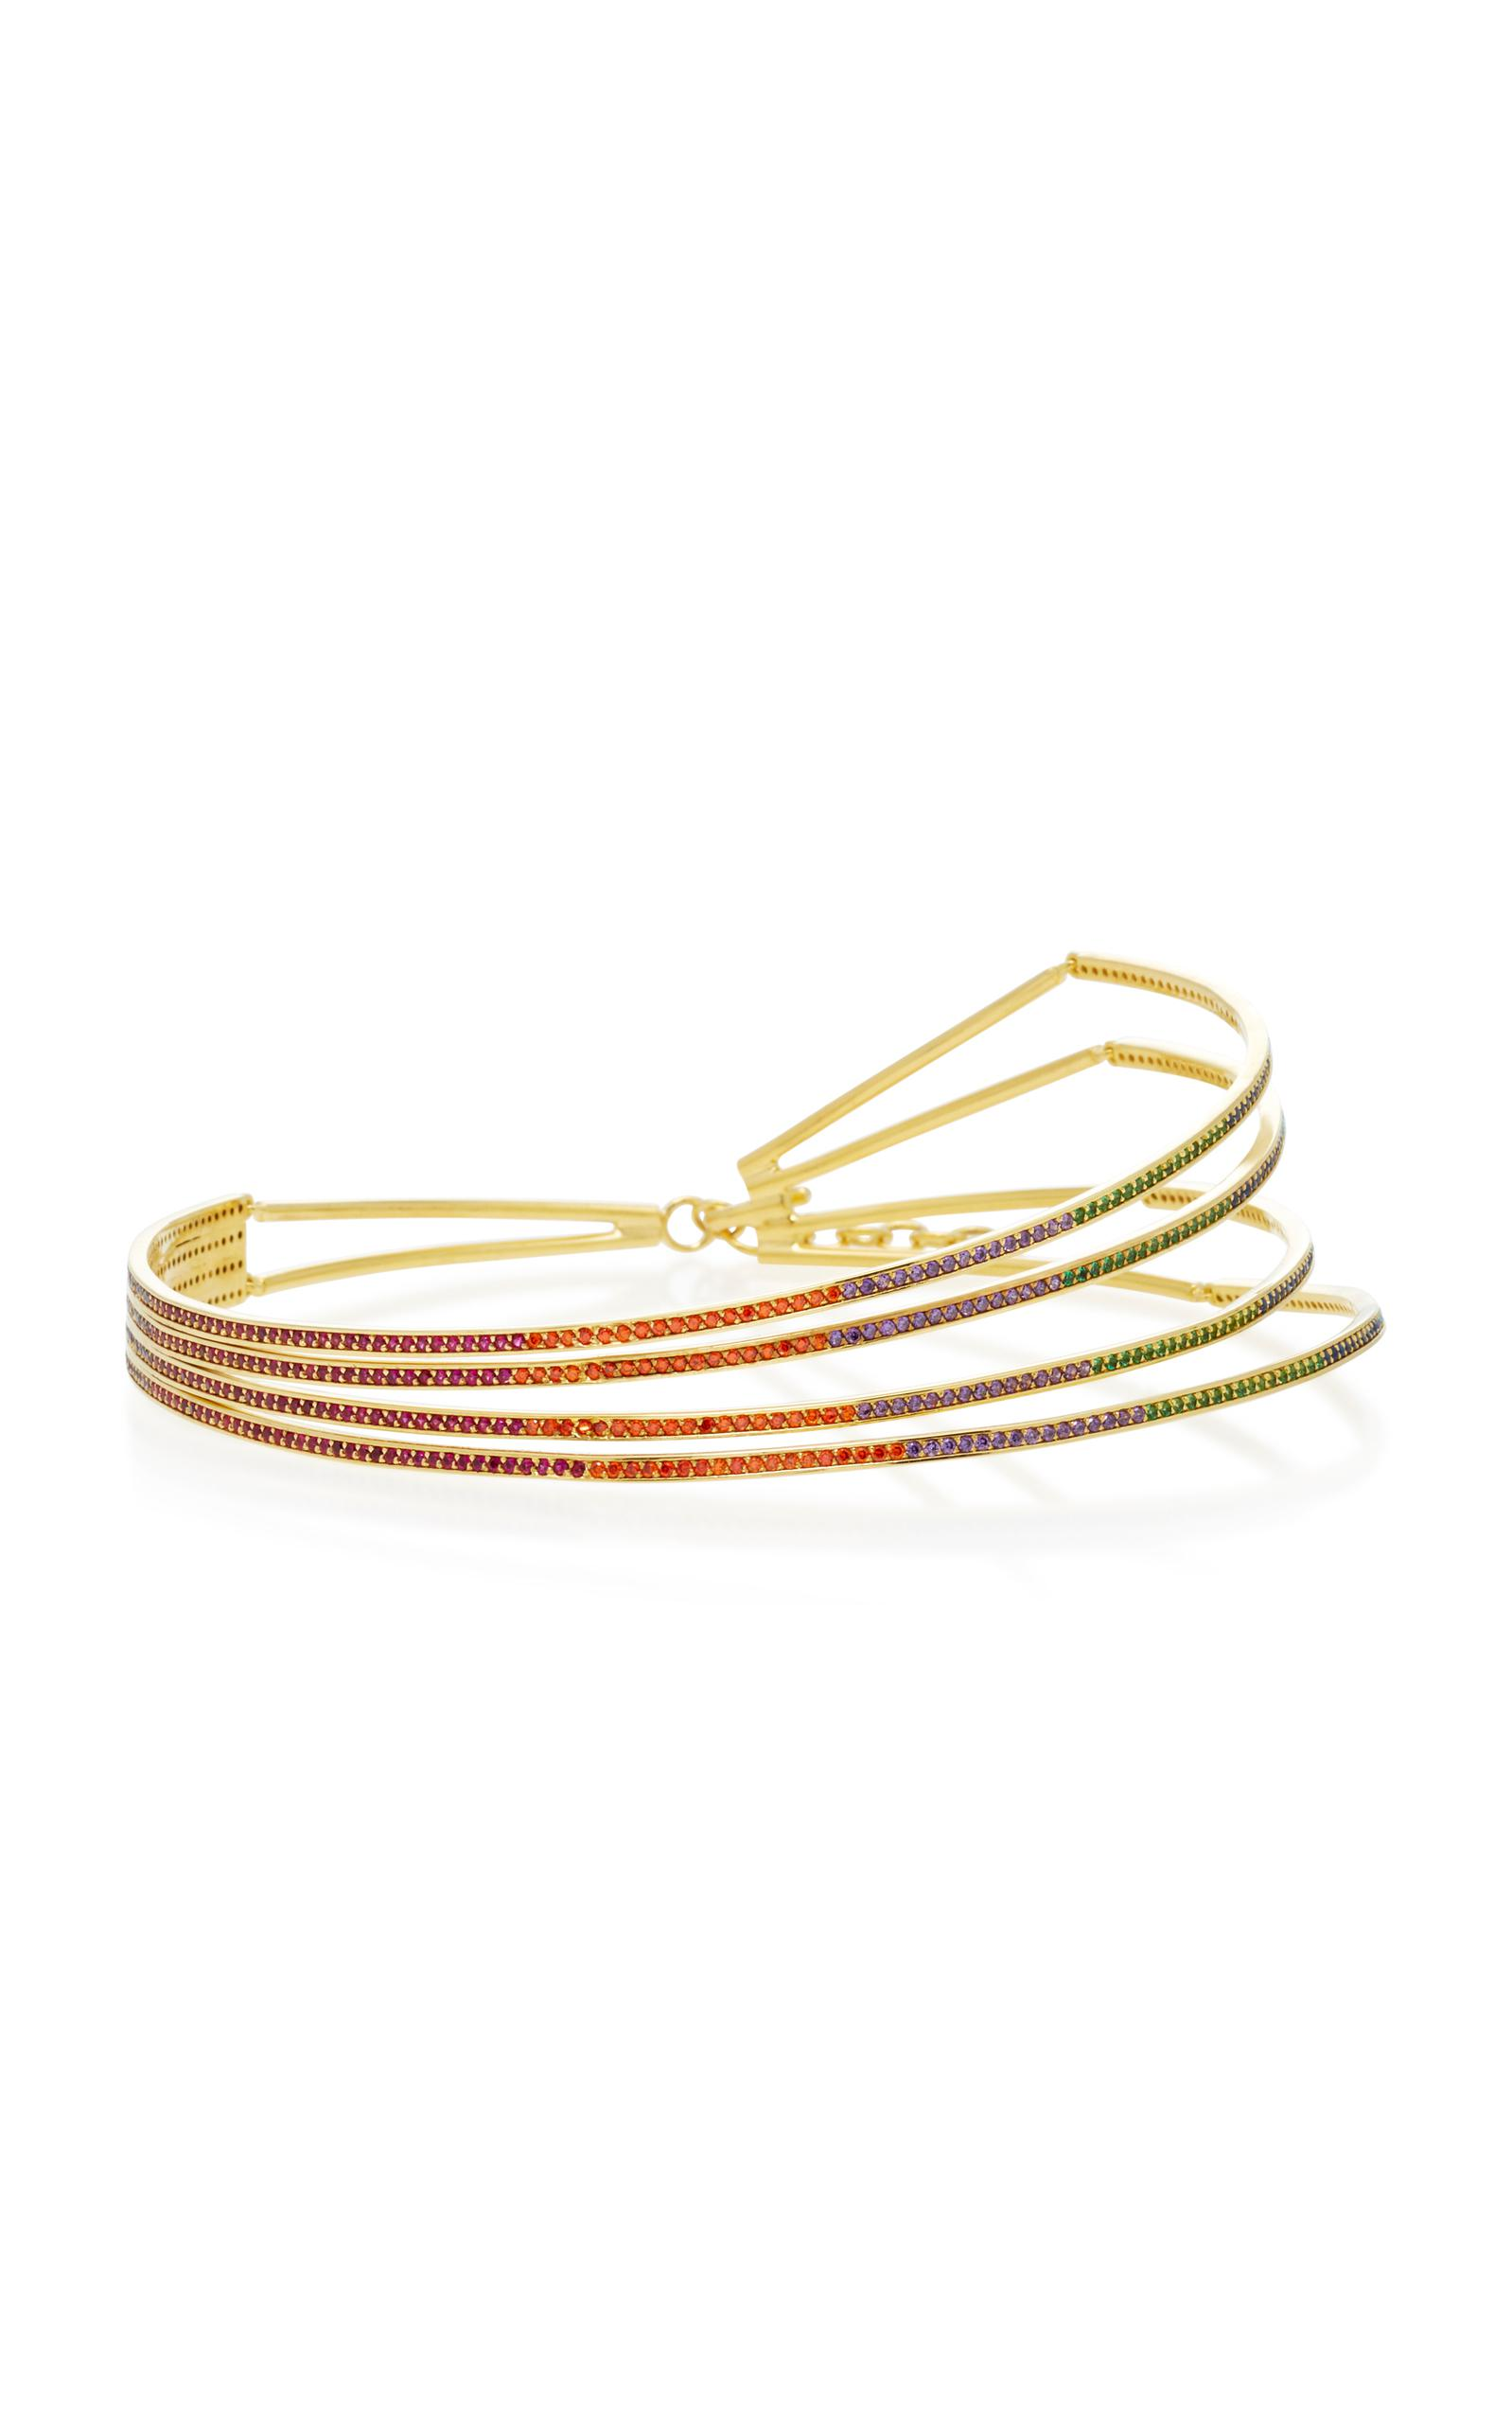 Joanna Laura Constantine Criss Cross Choker Necklace in Multi Gold-Plated Brass with Multicolored Stones baaxeQcNz